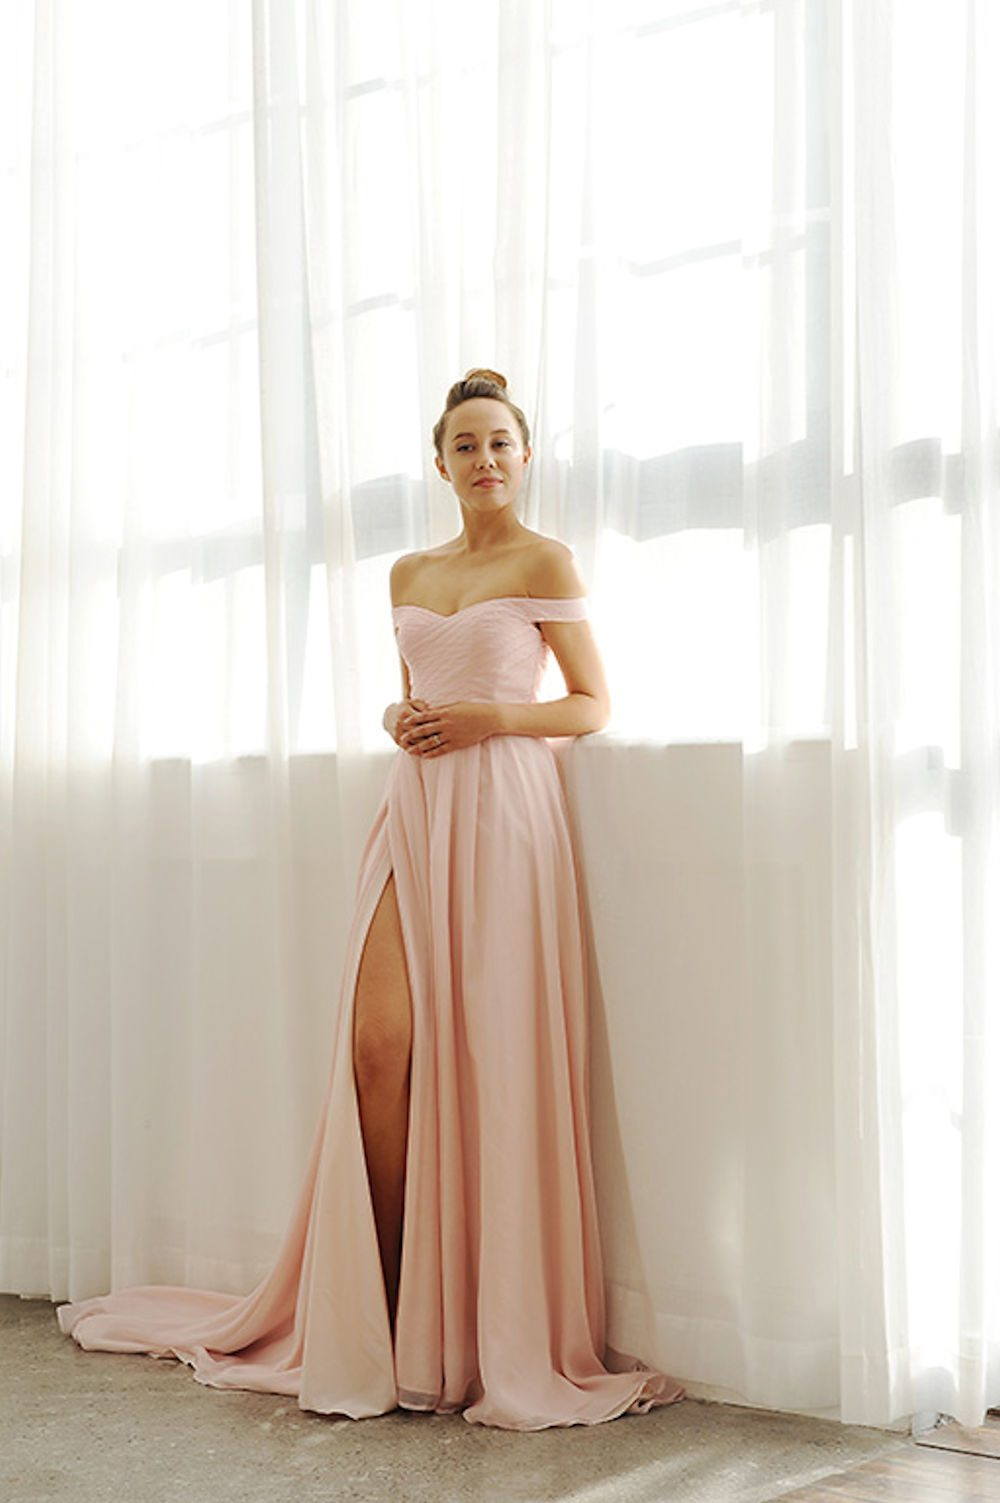 Kim Alpha Bridal - Bridal & Formal Dresses Melbourne - Joey Blush Pink Dress